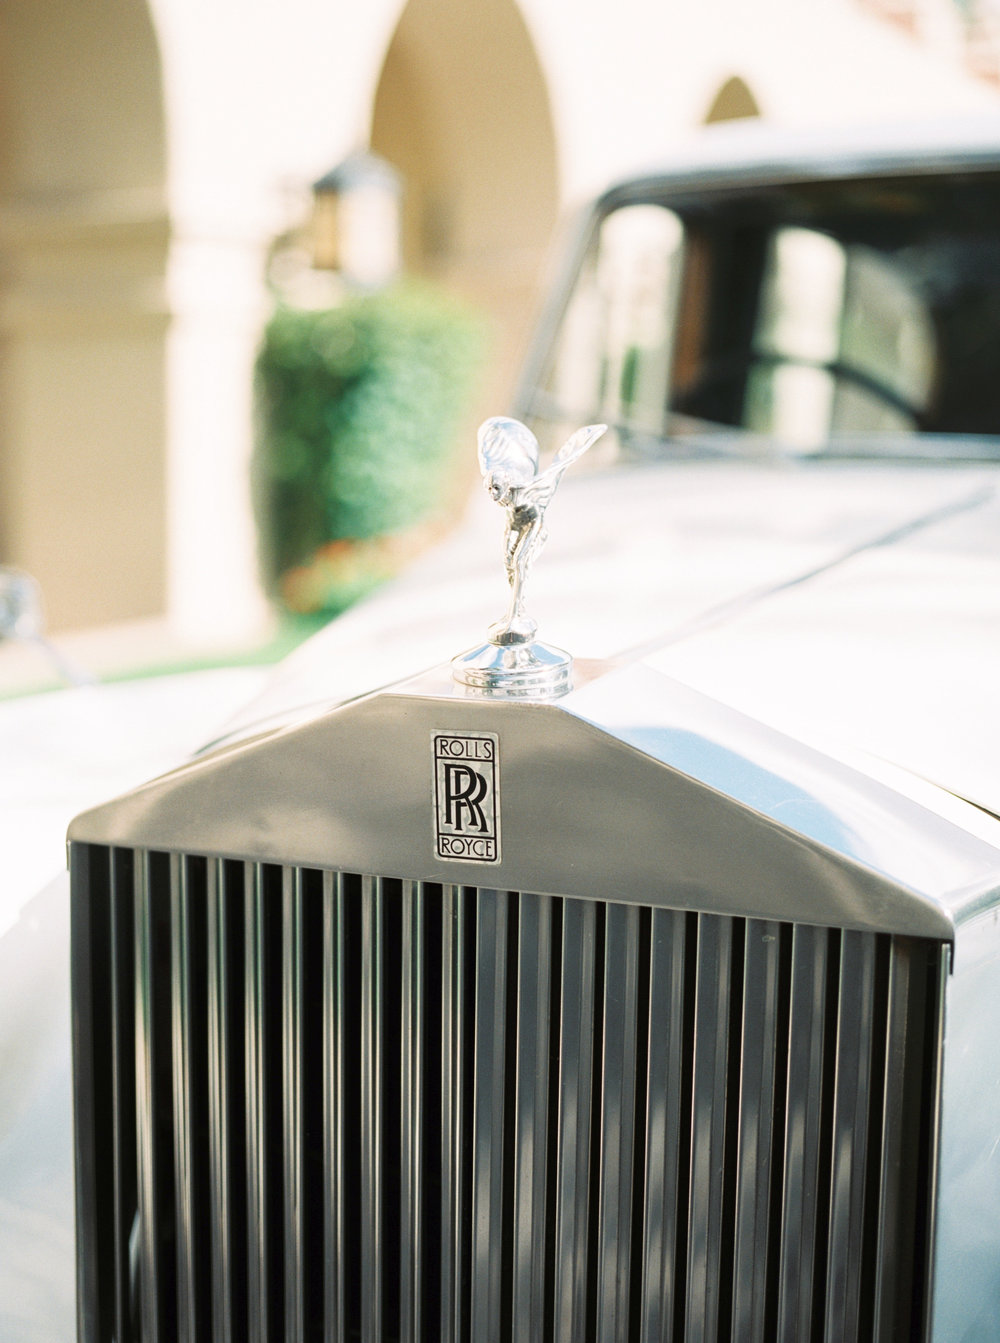 Rolls Royce wedding transportation, wedding transportation, bride and groom transportation